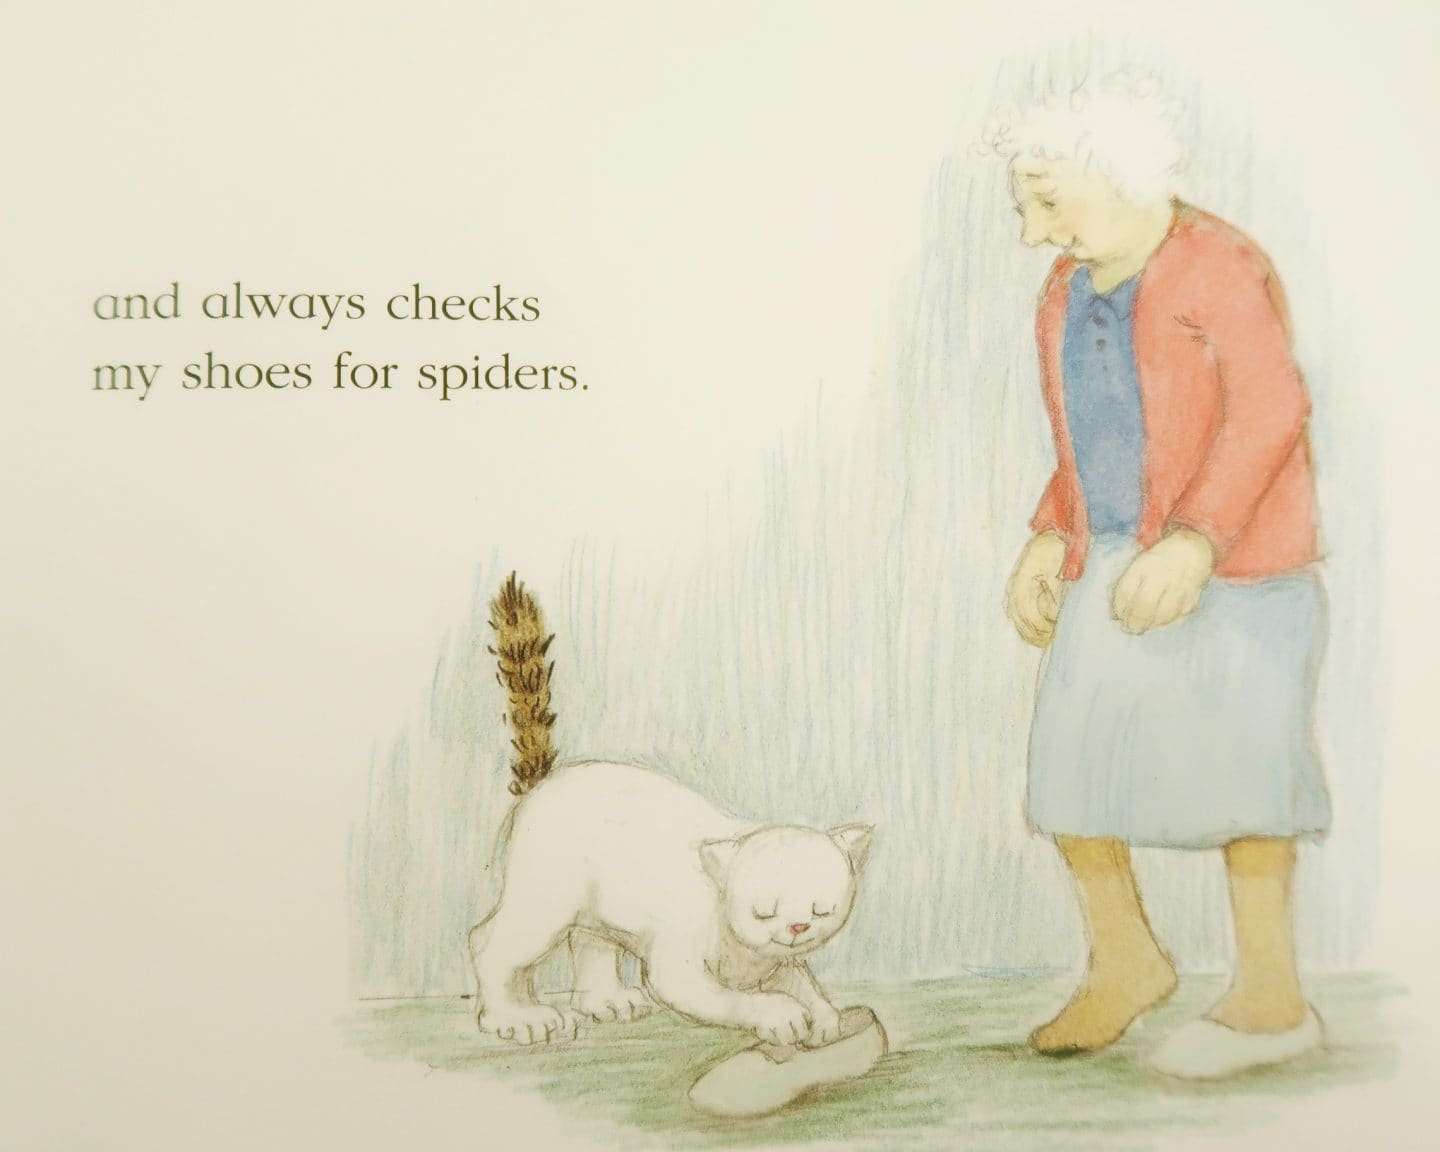 An illustration from the book - Katinka the cat checks her owner's shoes for spiders - Katinka's Tail